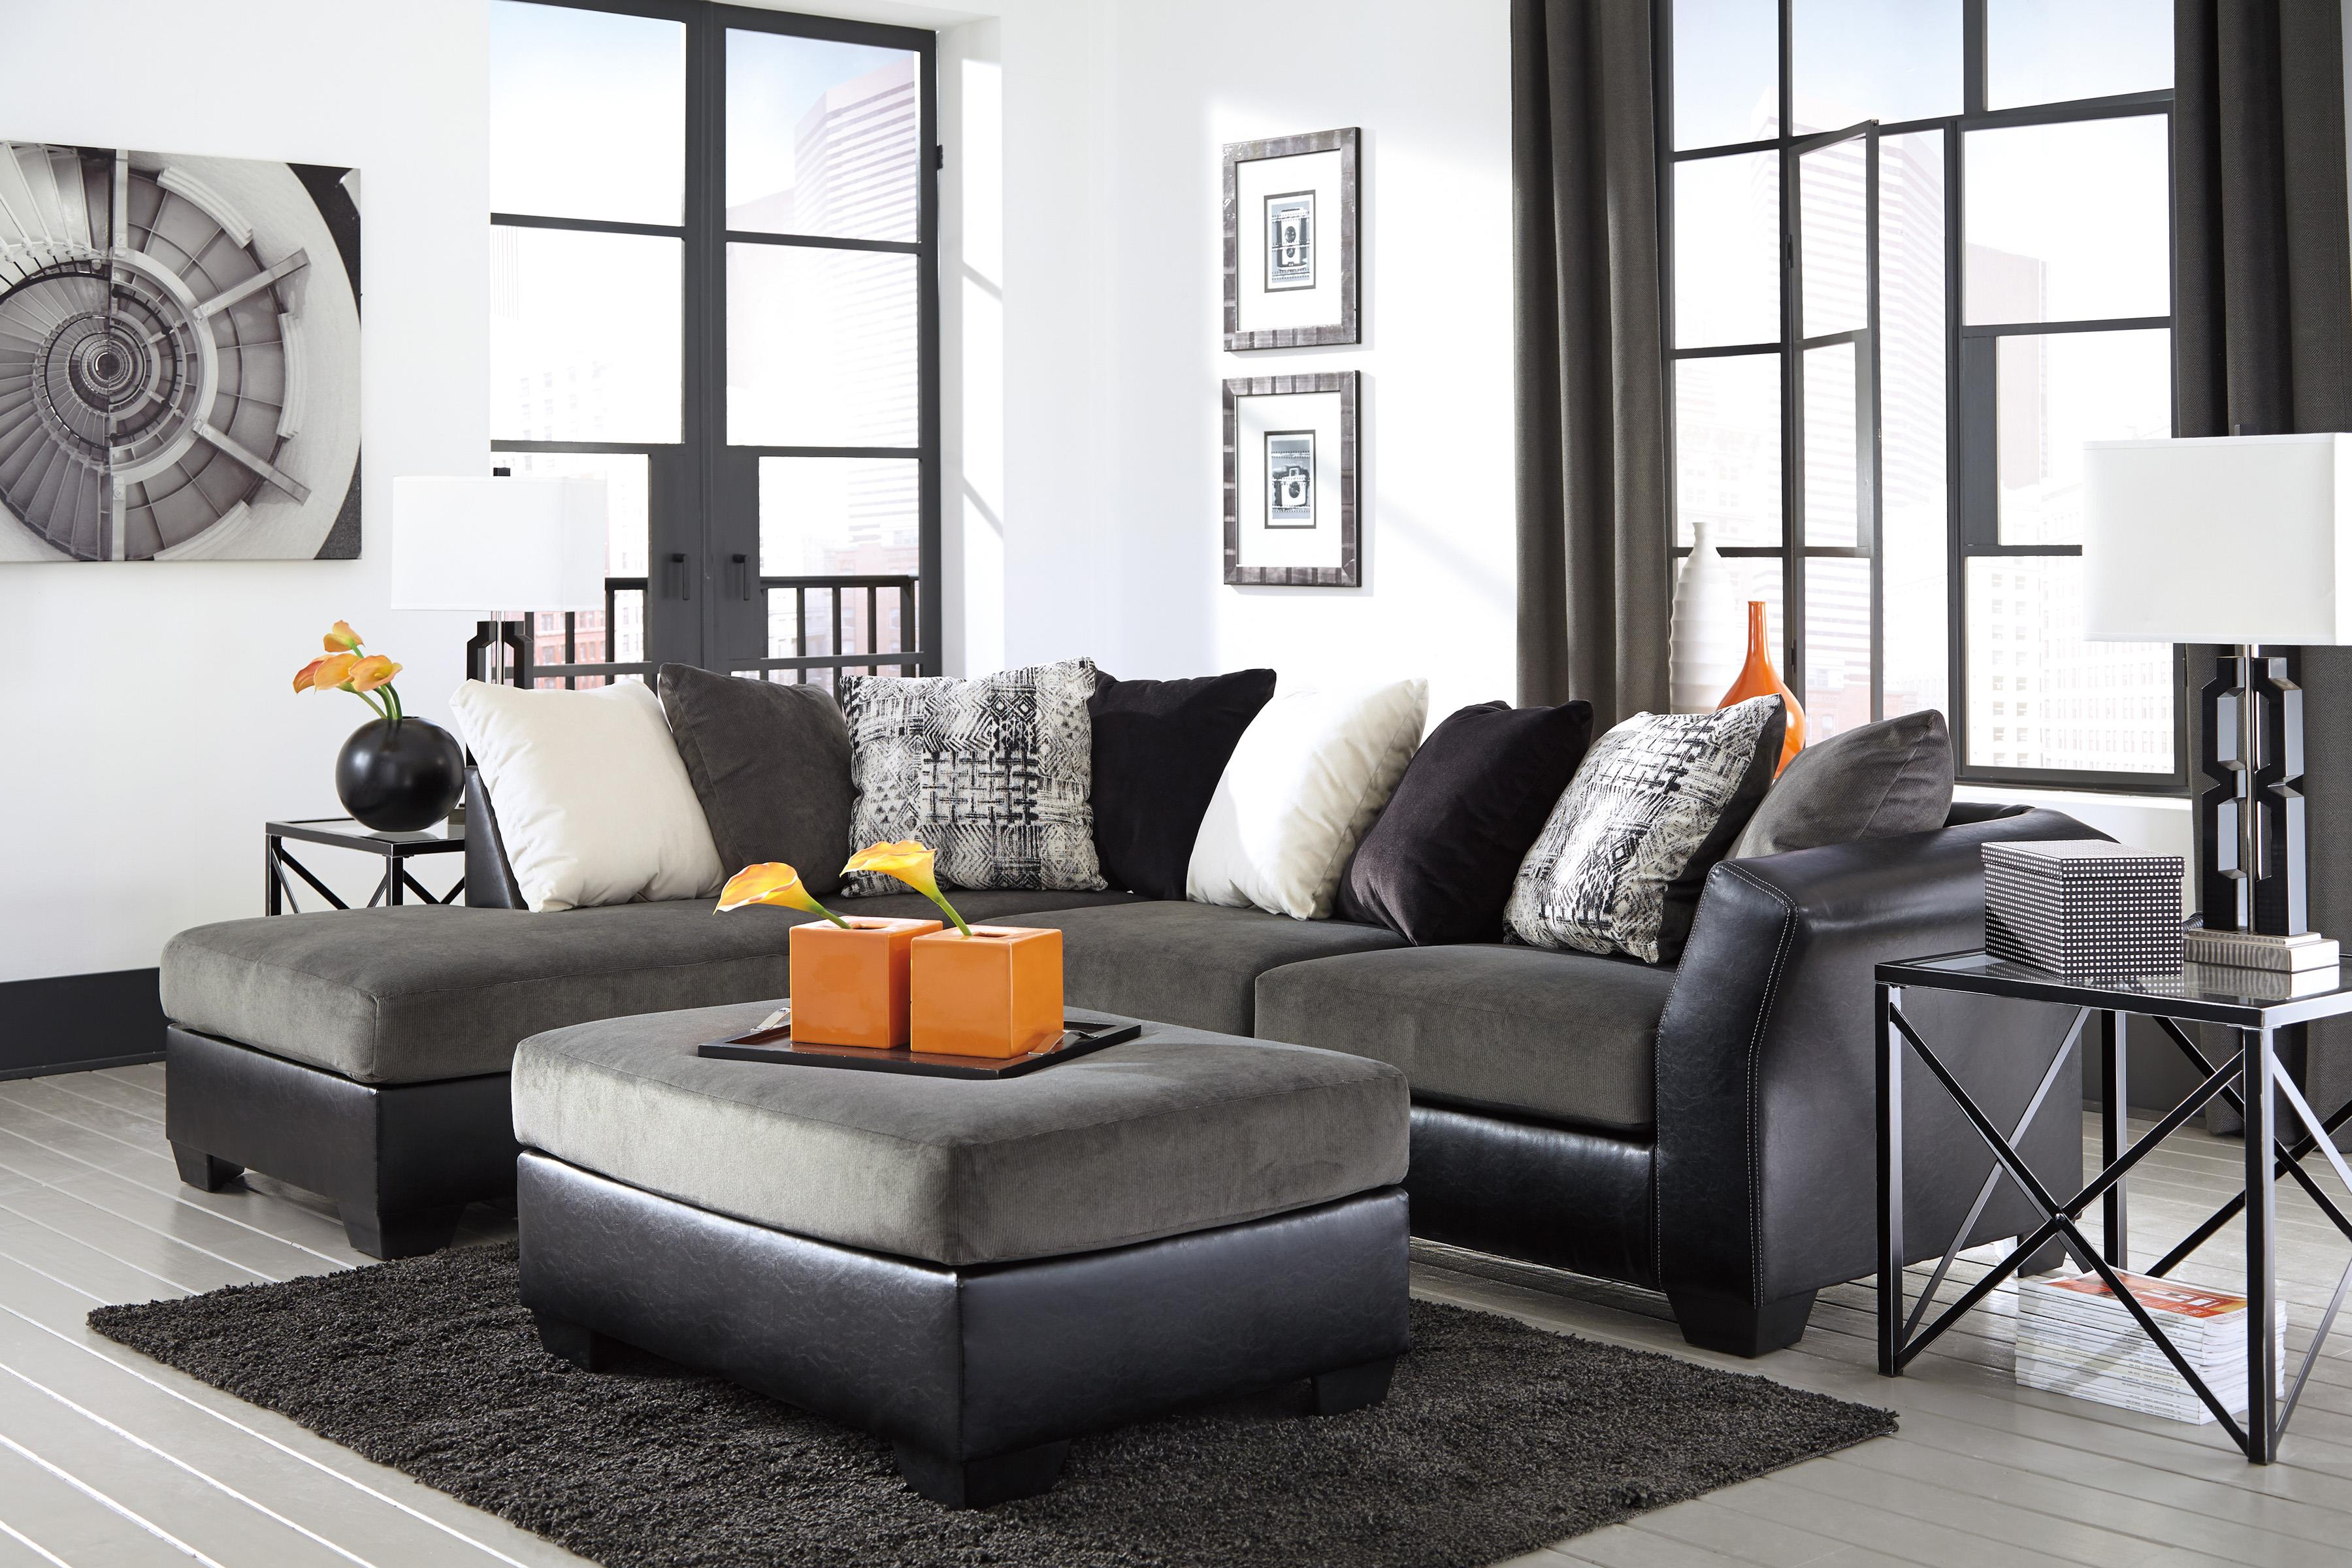 Signature Design by Ashley Armant Stationary Living Room Group - Item Number: 20200 Living Room Group 2